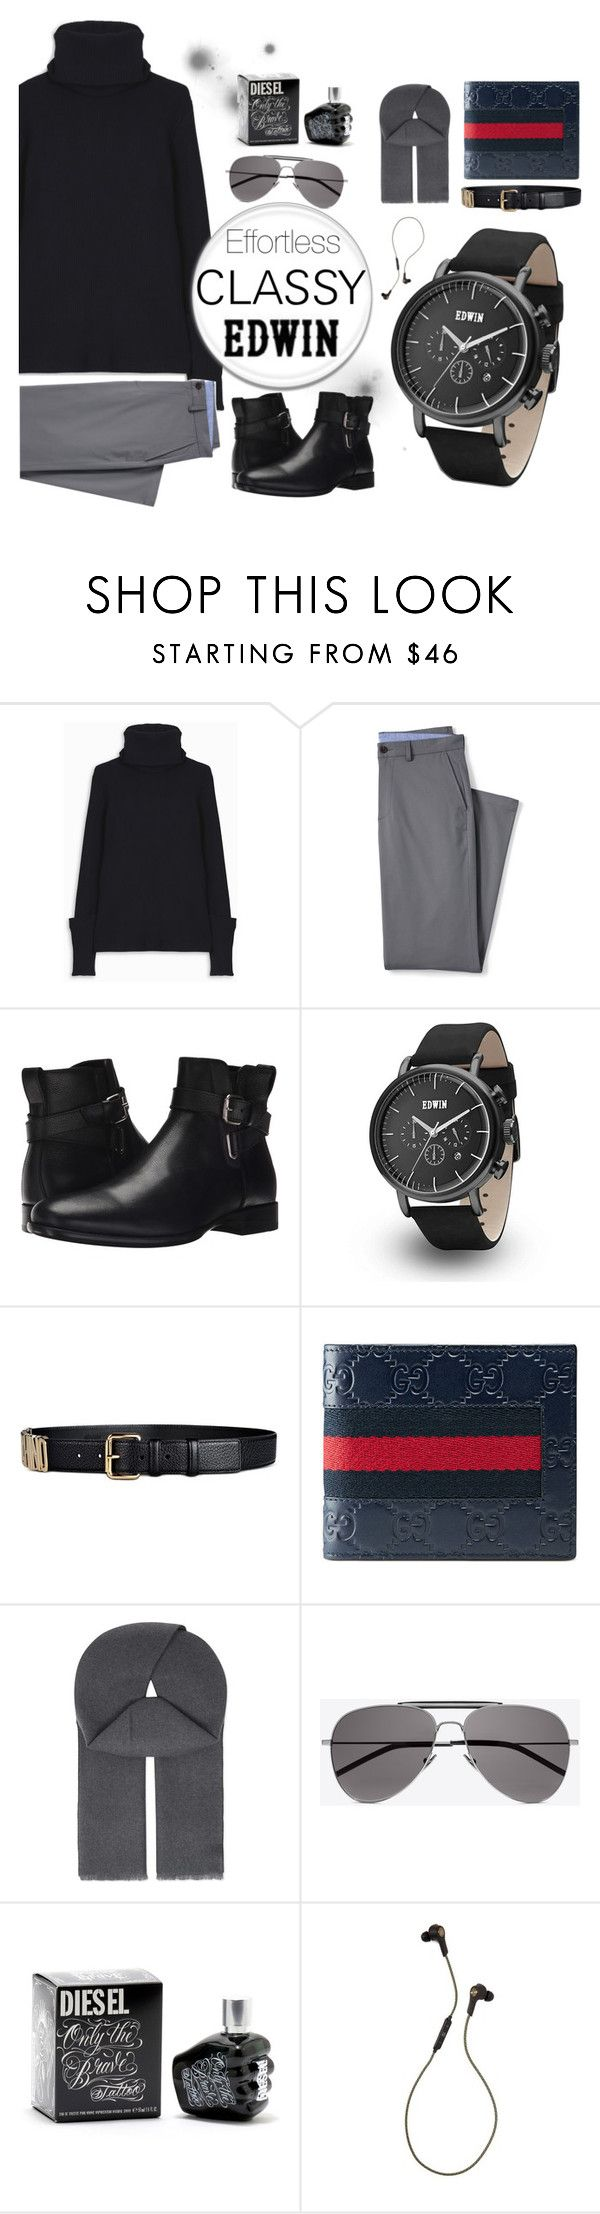 """Effortless Classy"" by zlab-watch ❤ liked on Polyvore featuring Atea Oceanie, Lands' End, Aquatalia by Marvin K., Moschino, Gucci, Yves Saint Laurent, Diesel and B&O Play"